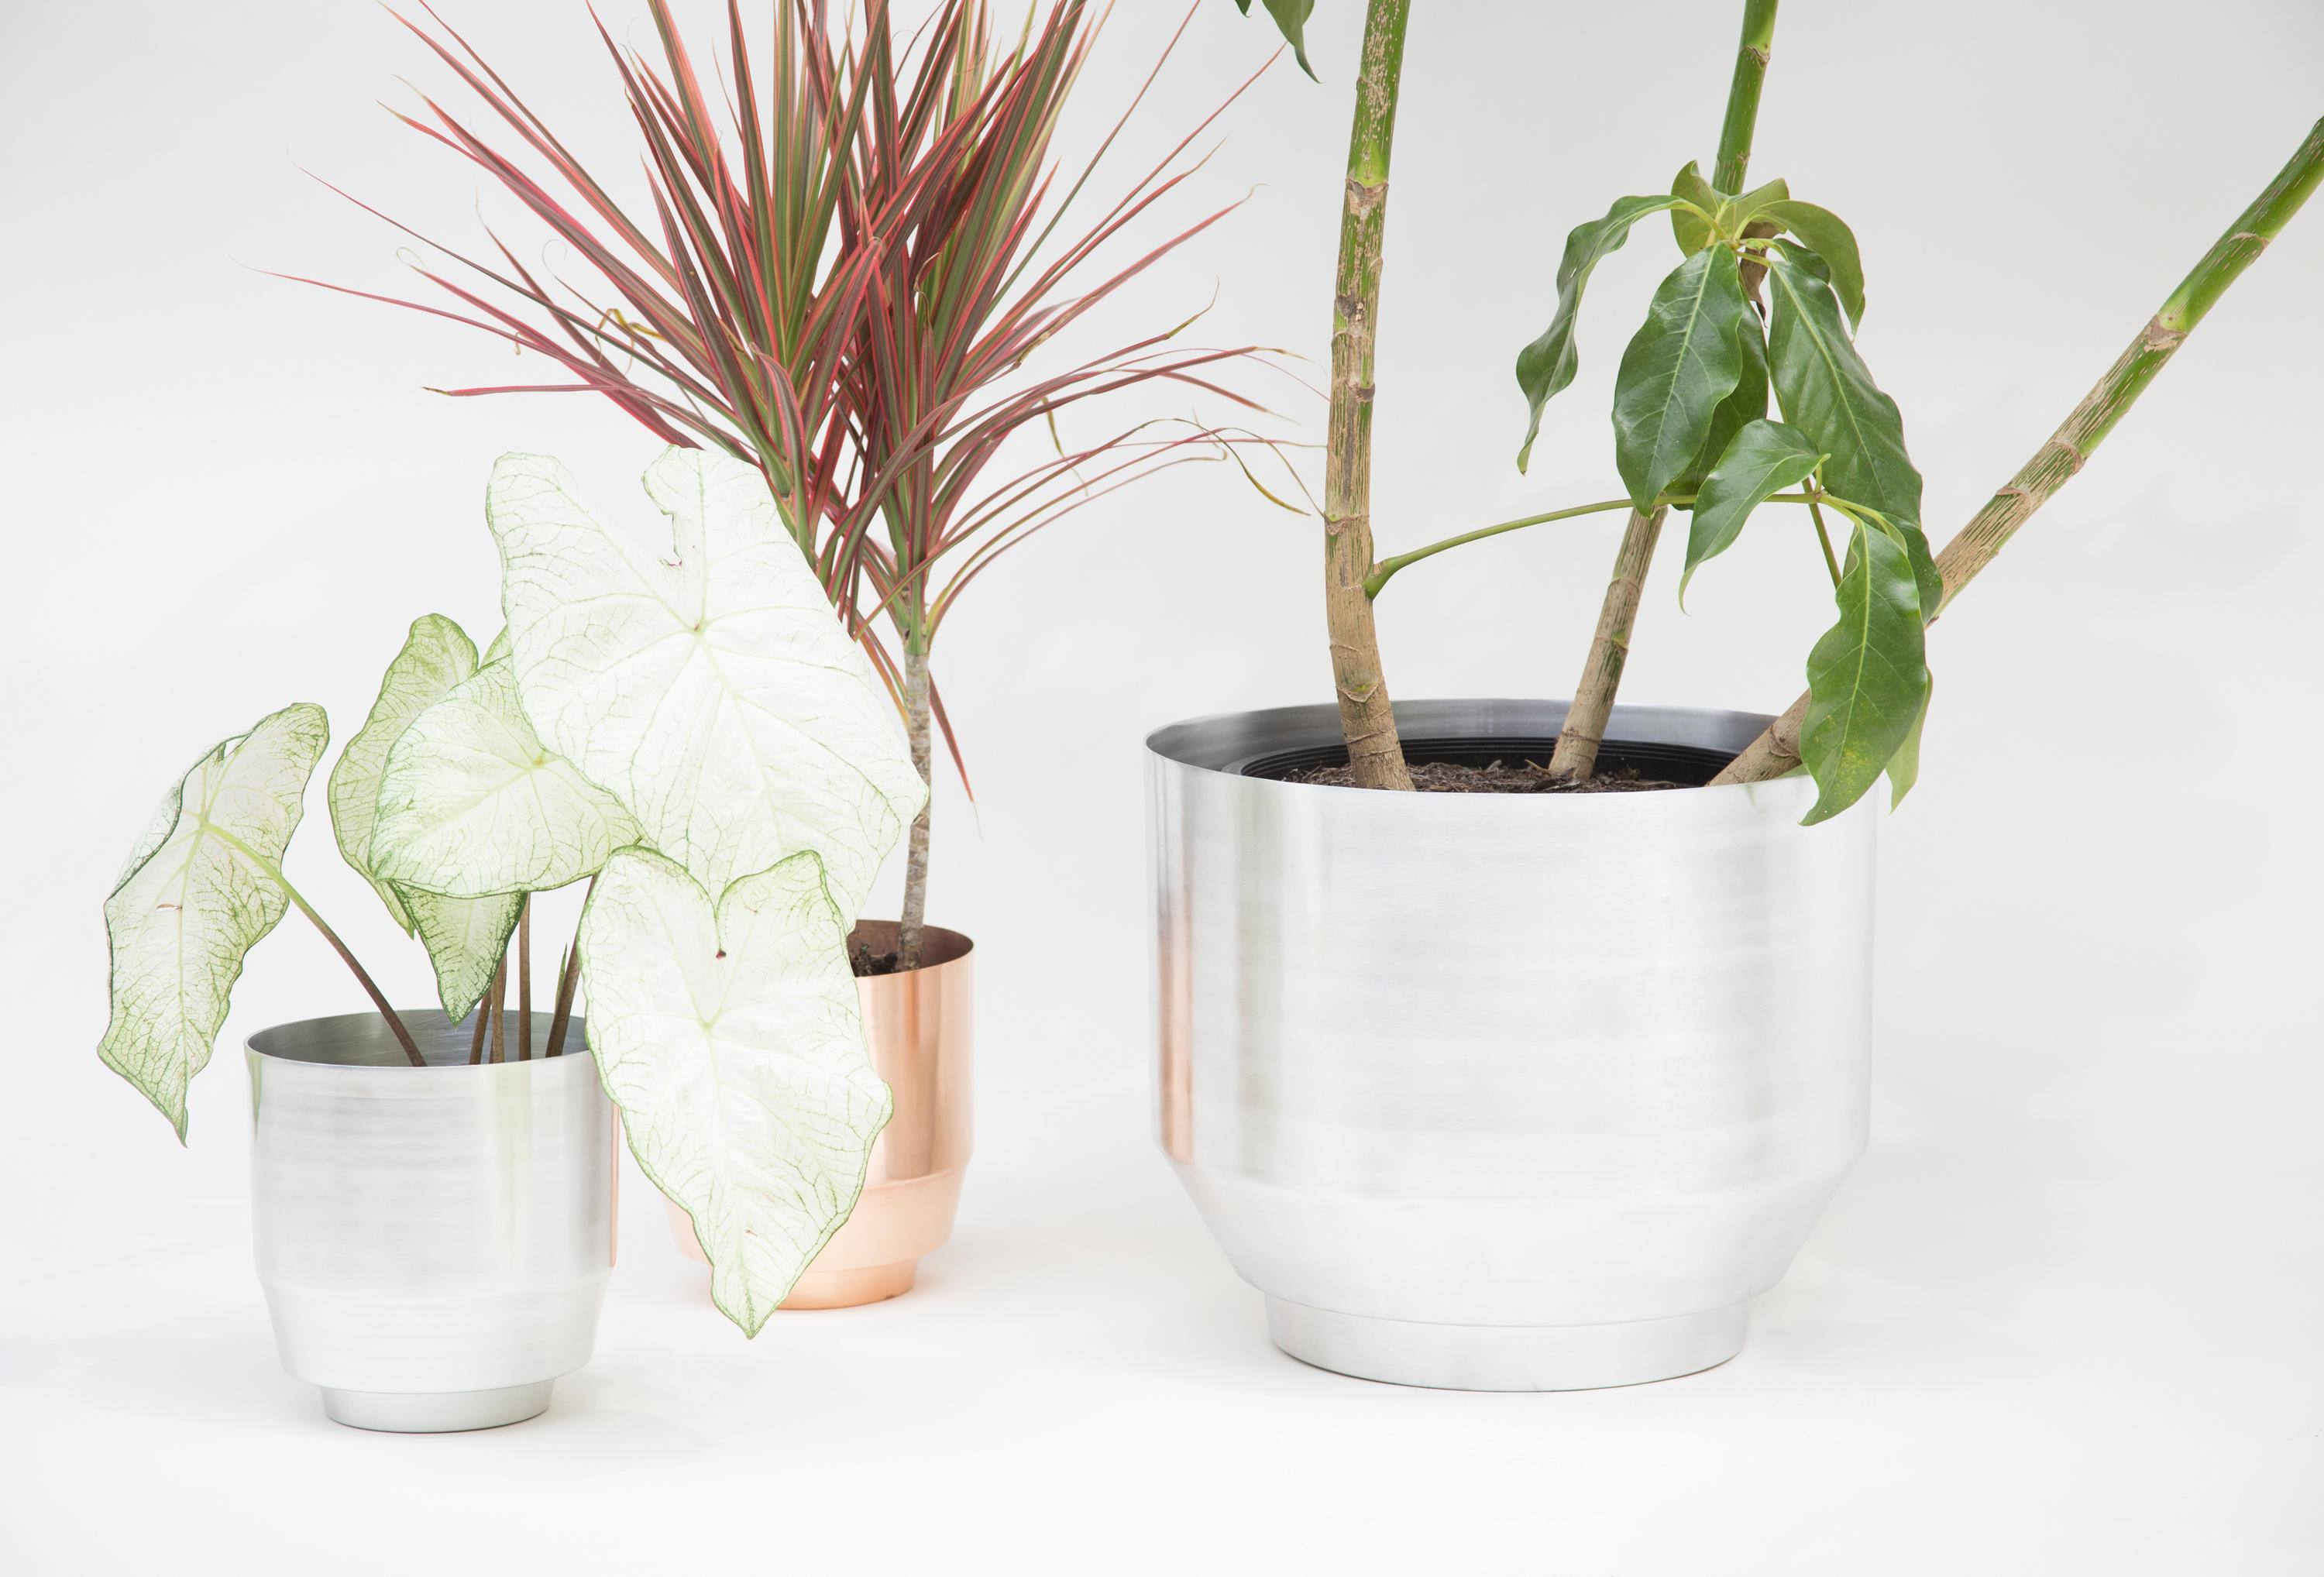 planter ideas planters garden marvelous round fancy indoor of stainless fabulous pots